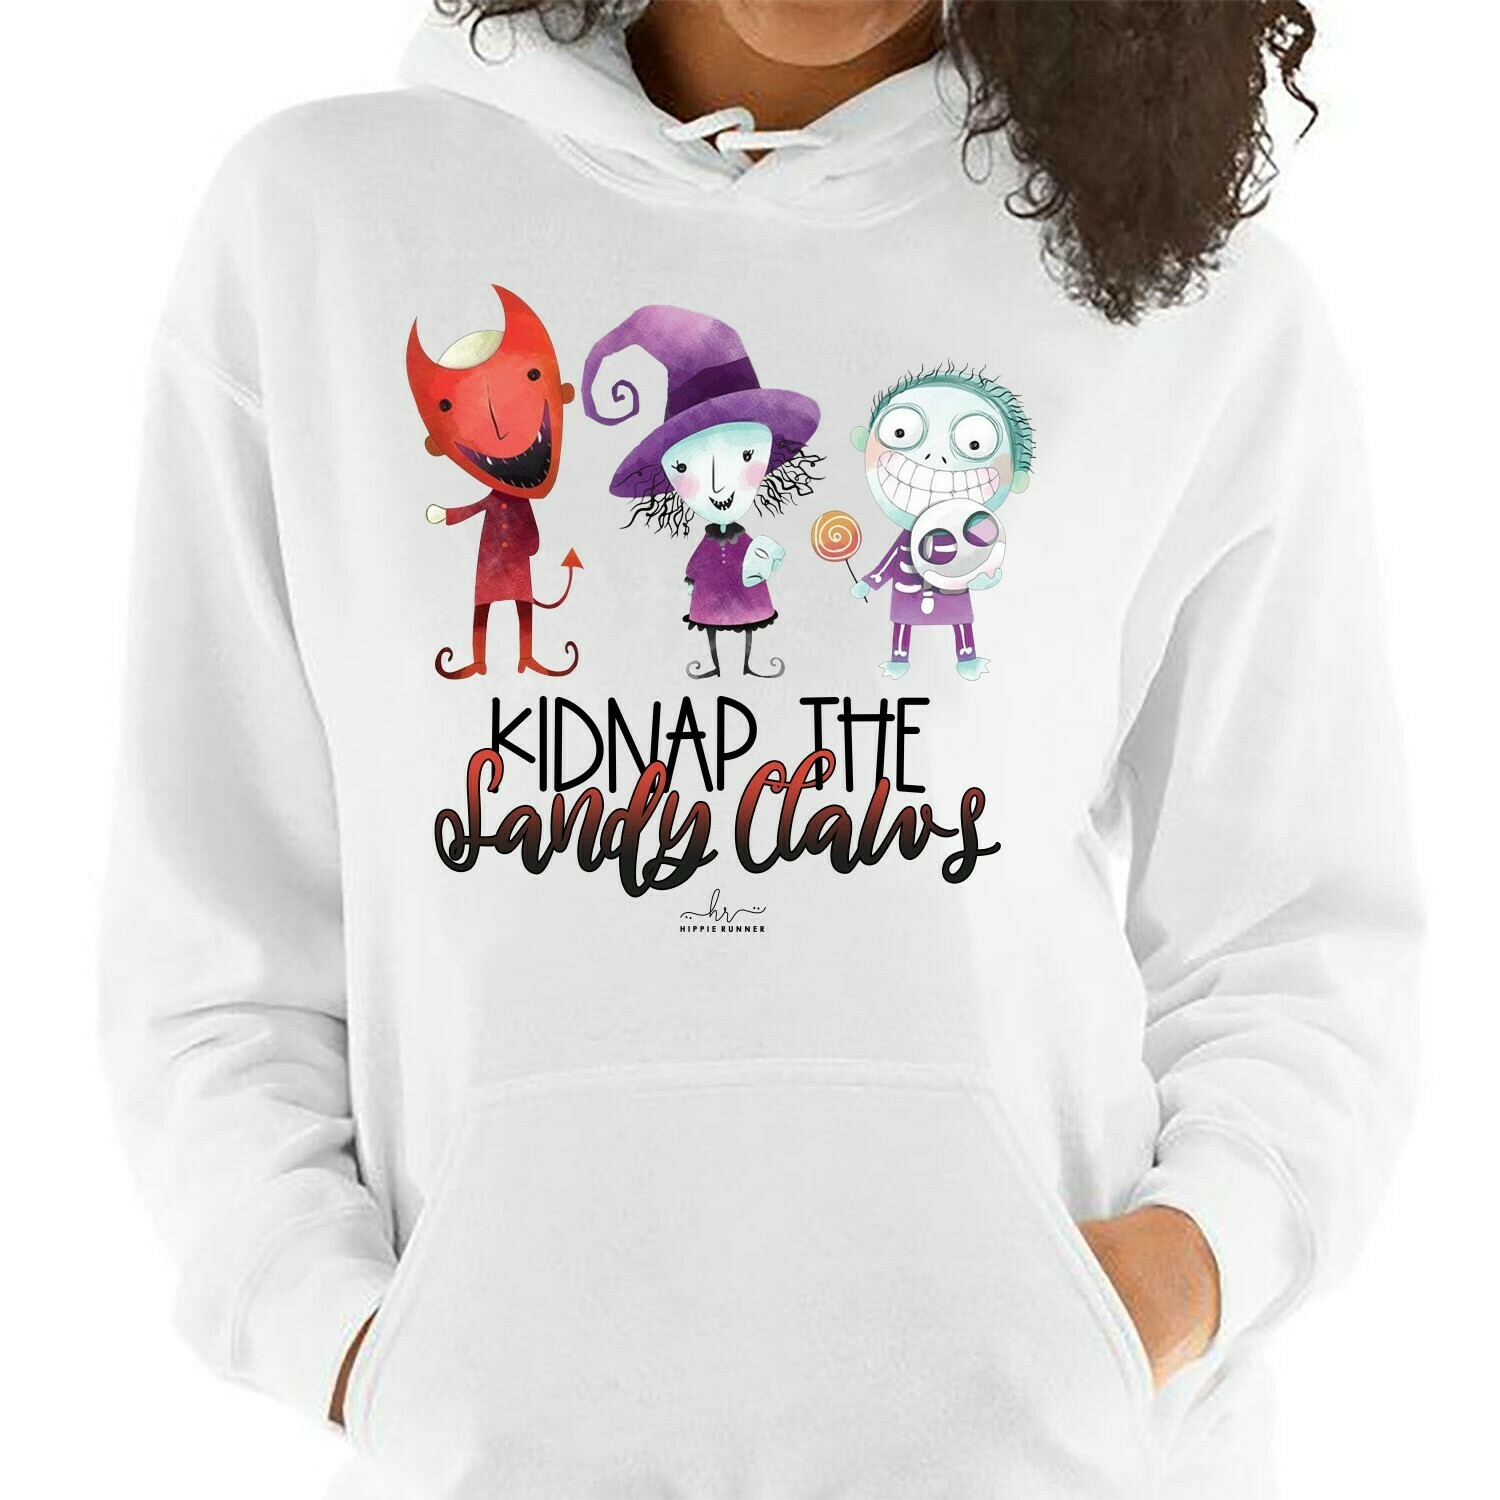 Cute Kids Cosplay Inspired Kidnap The Sandy Claws The Nightmare Before Christmas Disney Villain Halloween Mickey Not So Scary T-Shirt Long Sleeve Sweatshirt Hoodie Jolly Family Gifts